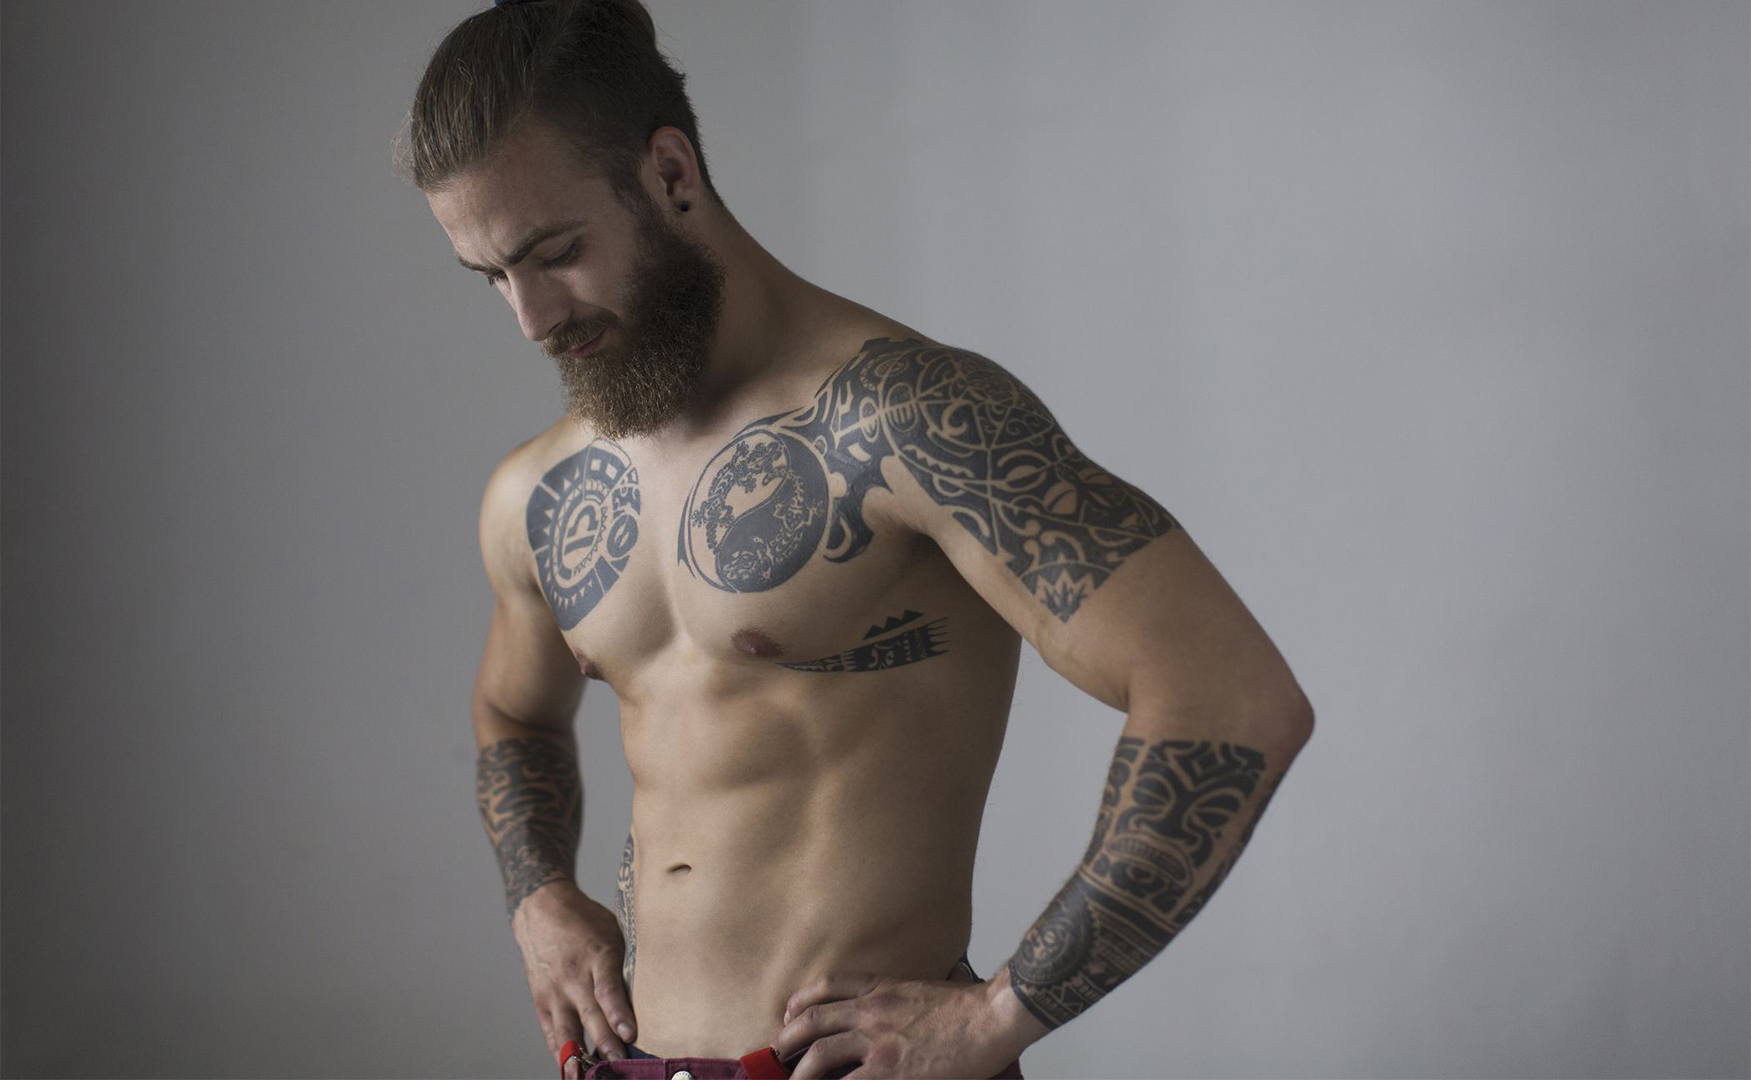 https://sofiagray.com/blog/wp-content/uploads/2020/02/1st-Sexiest-male-body-parts.jpg